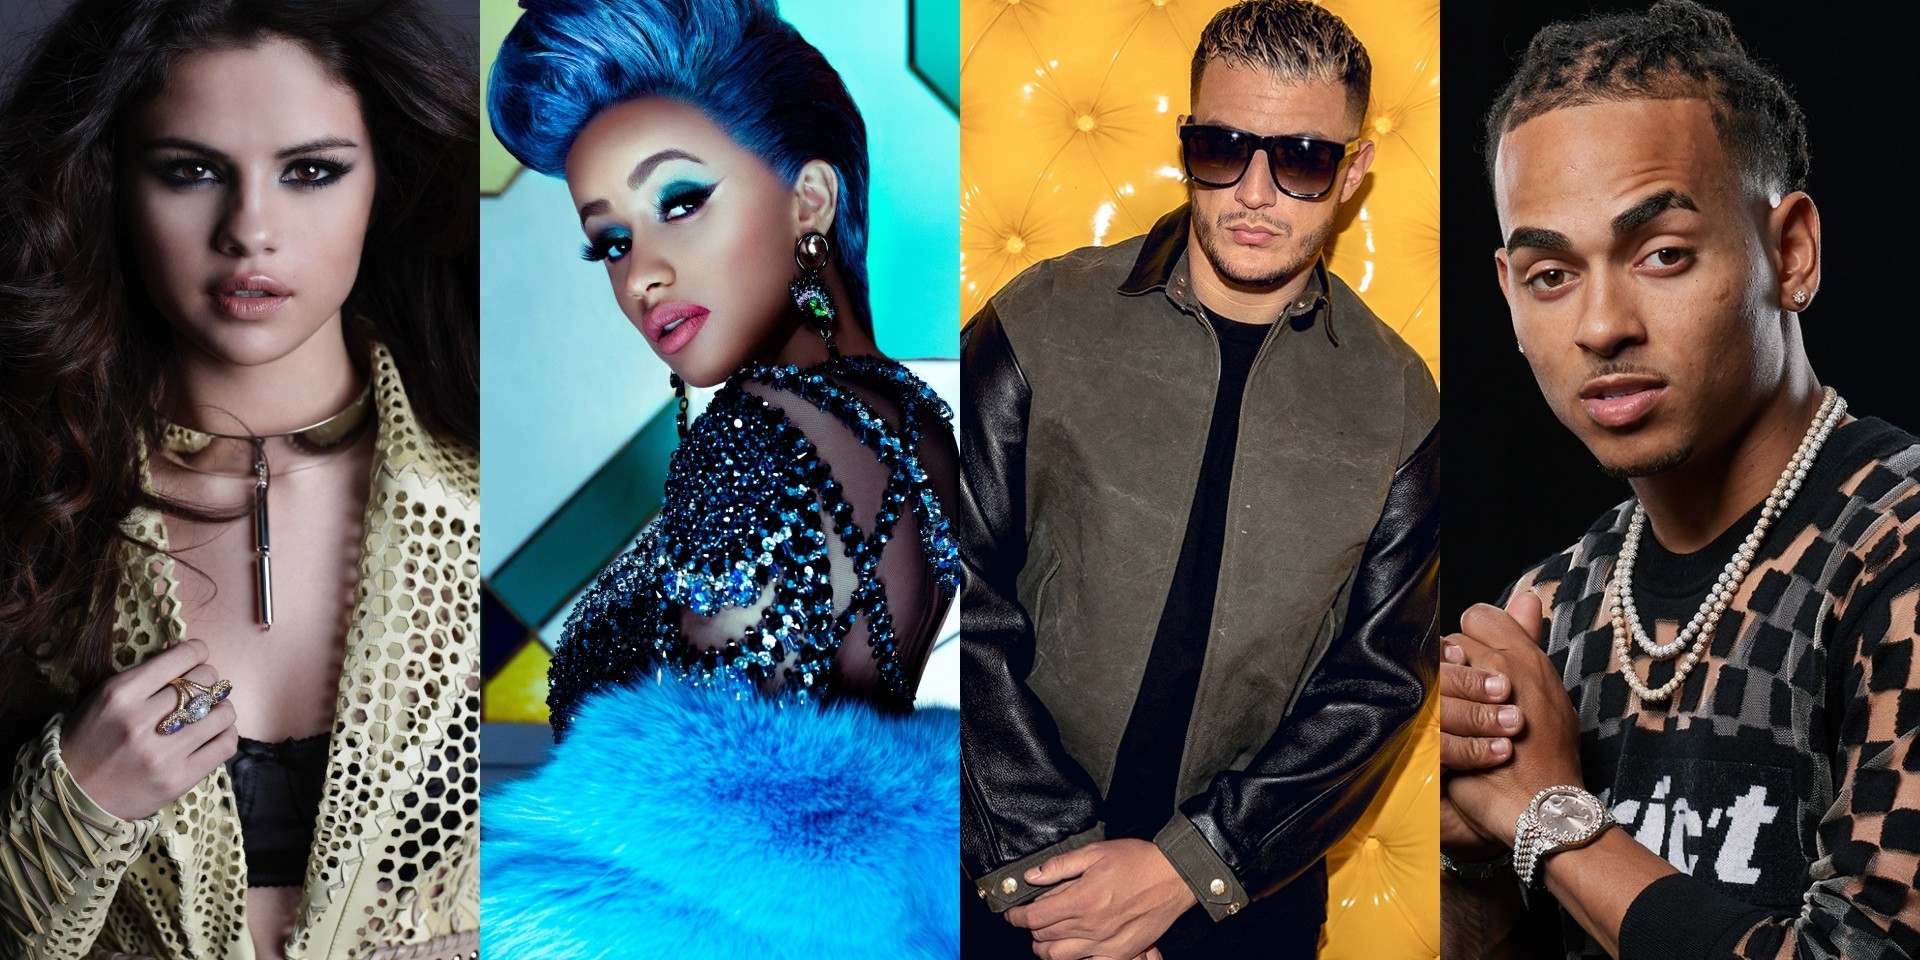 Behind The Beats: DJ Snake, Cardi B & More On 'Taki Taki'